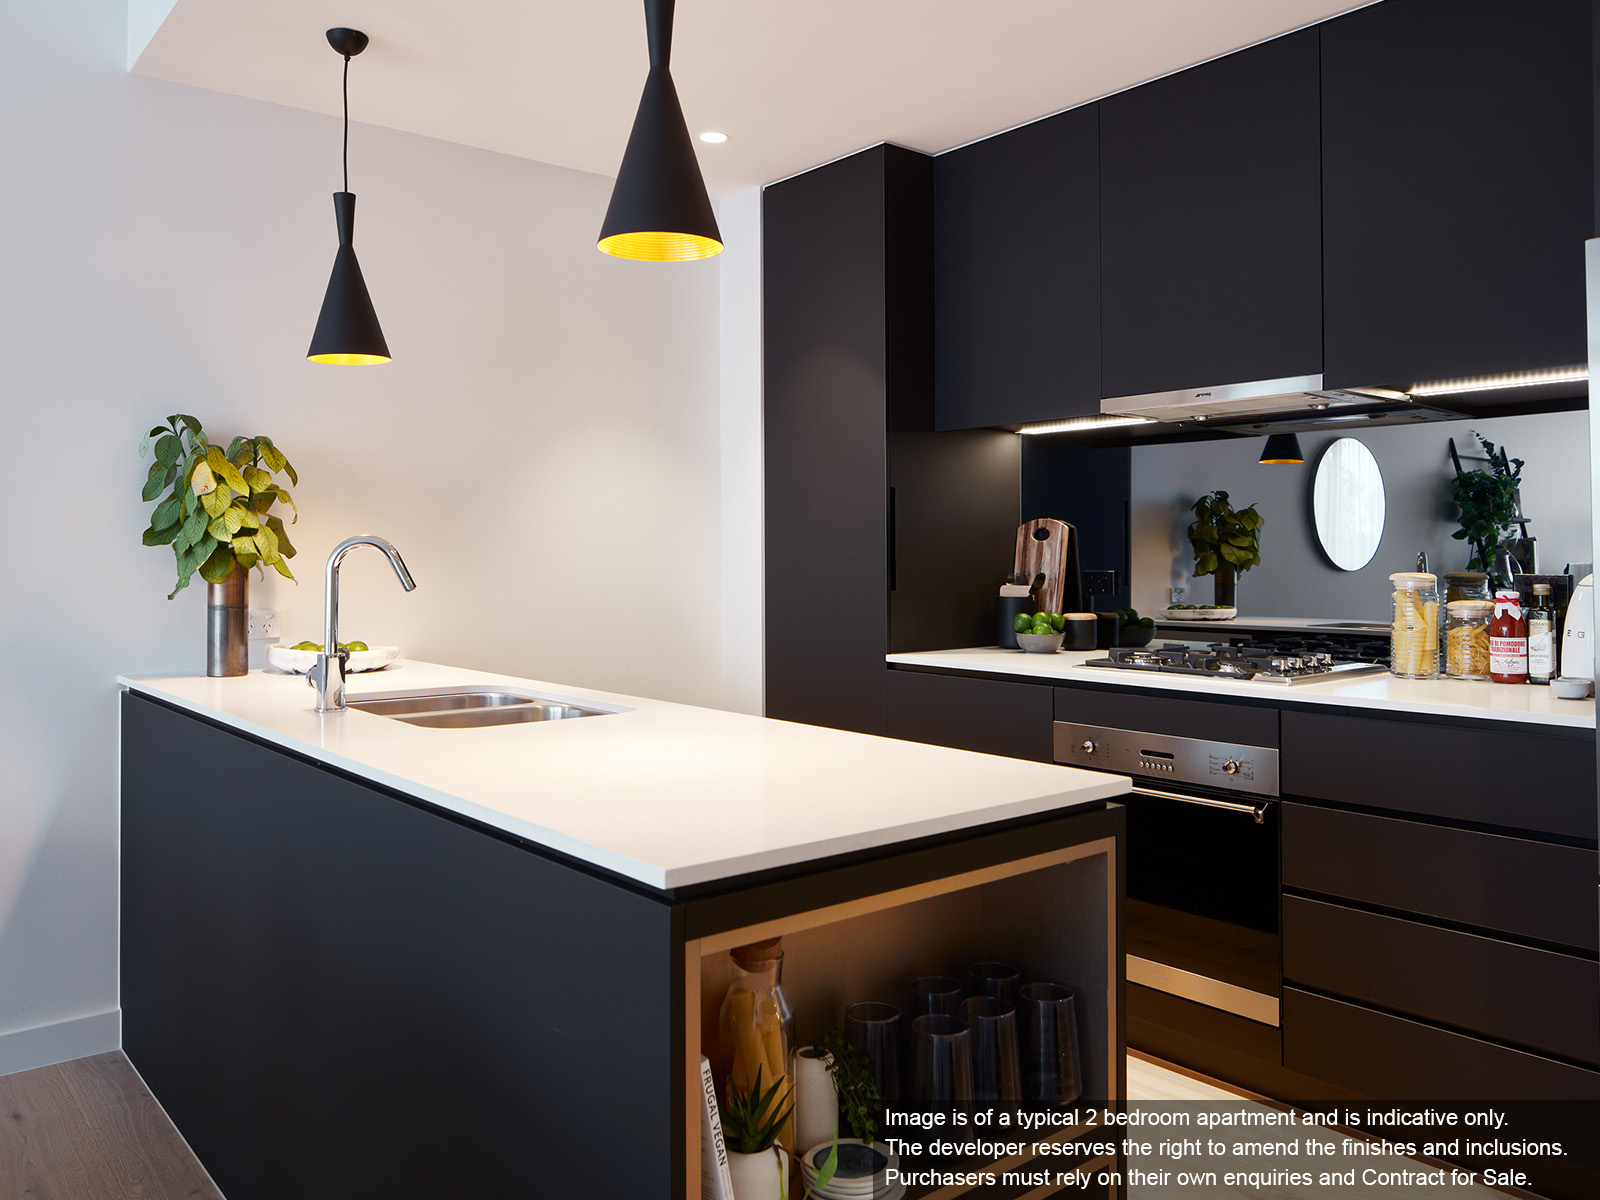 Image is of a typical 2 bedroom apartment and is indicative only.